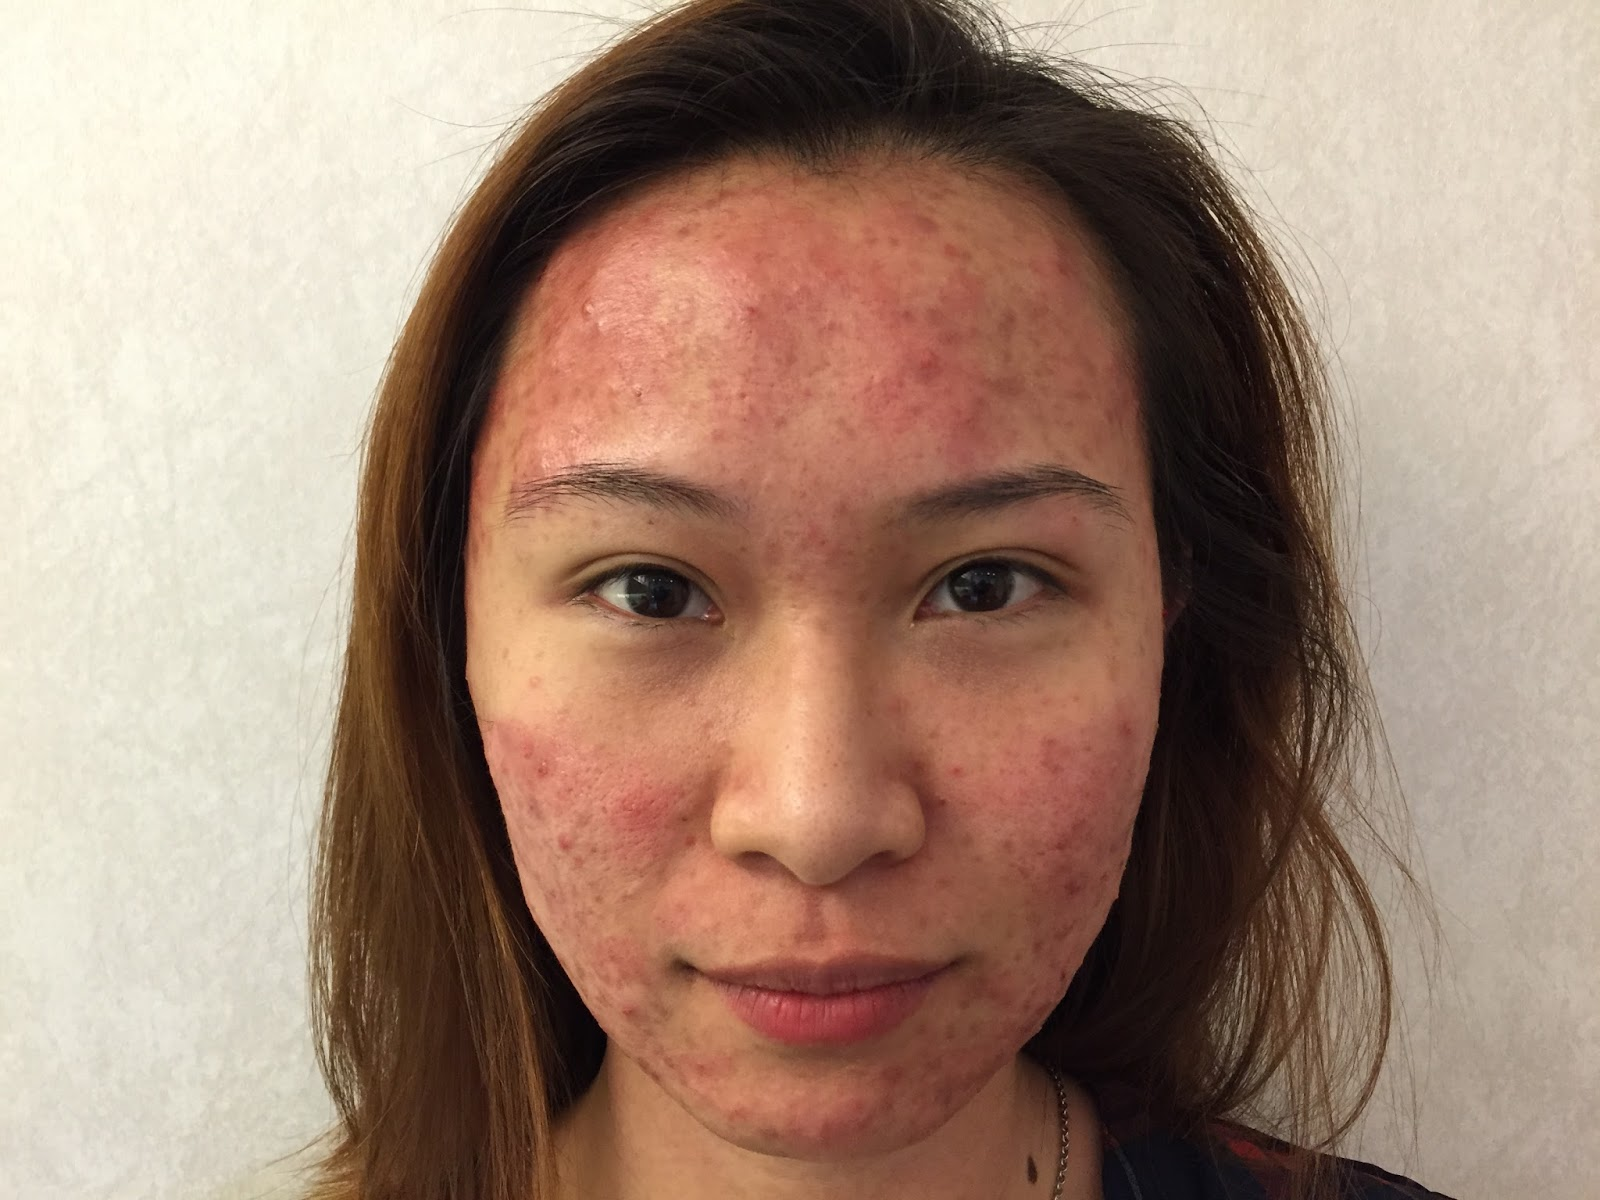 Here Is Patient S A Young Adult Female Whom Has Been Battling With Acne Since Her Teenage Years I First Met Her In June And This Pictures Were Taken On